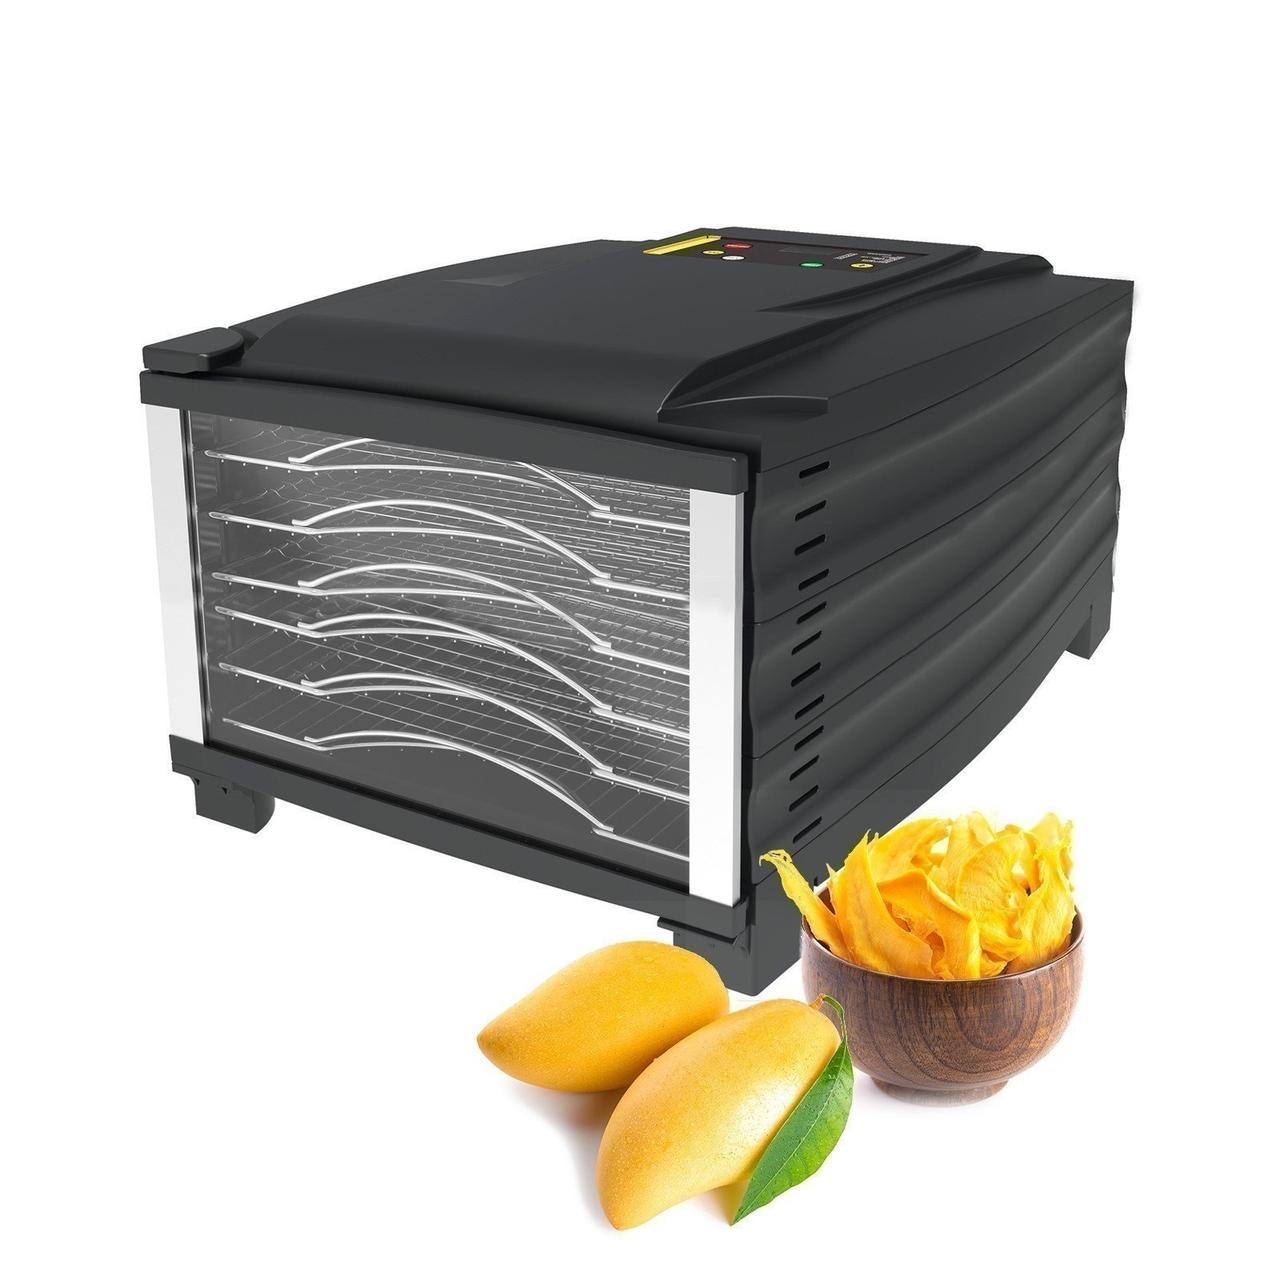 Дегидратор BioChef Arizona 6 Tray Food Dehydrator